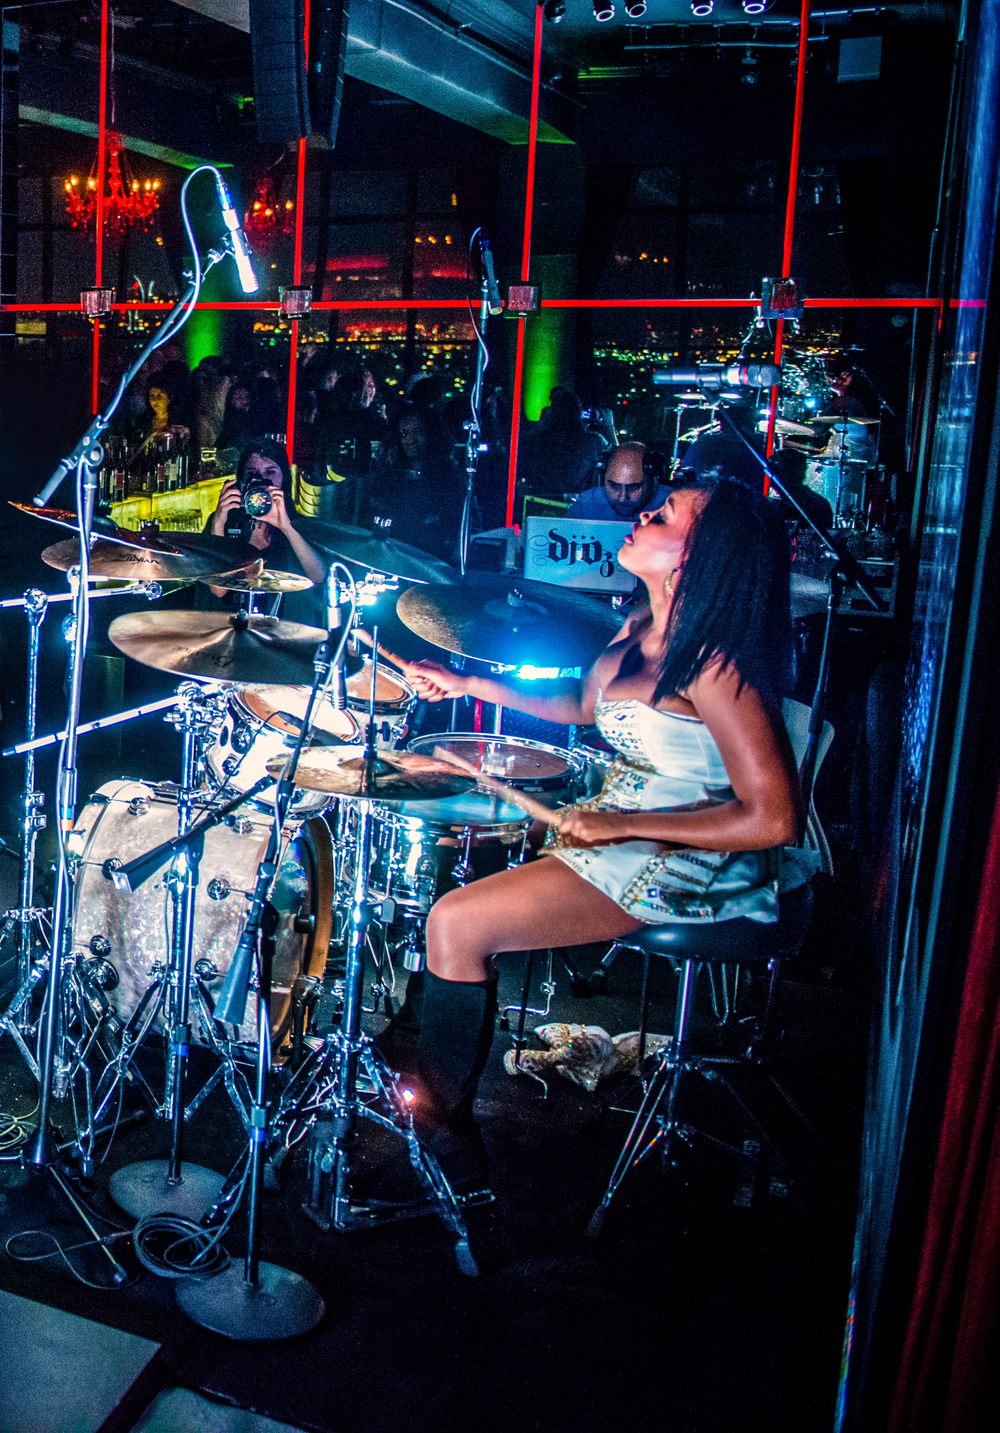 Glorious, Livetronica Drummer, Pop-R&B Singer, Producer, Live at W Washington, POV 5.jpg